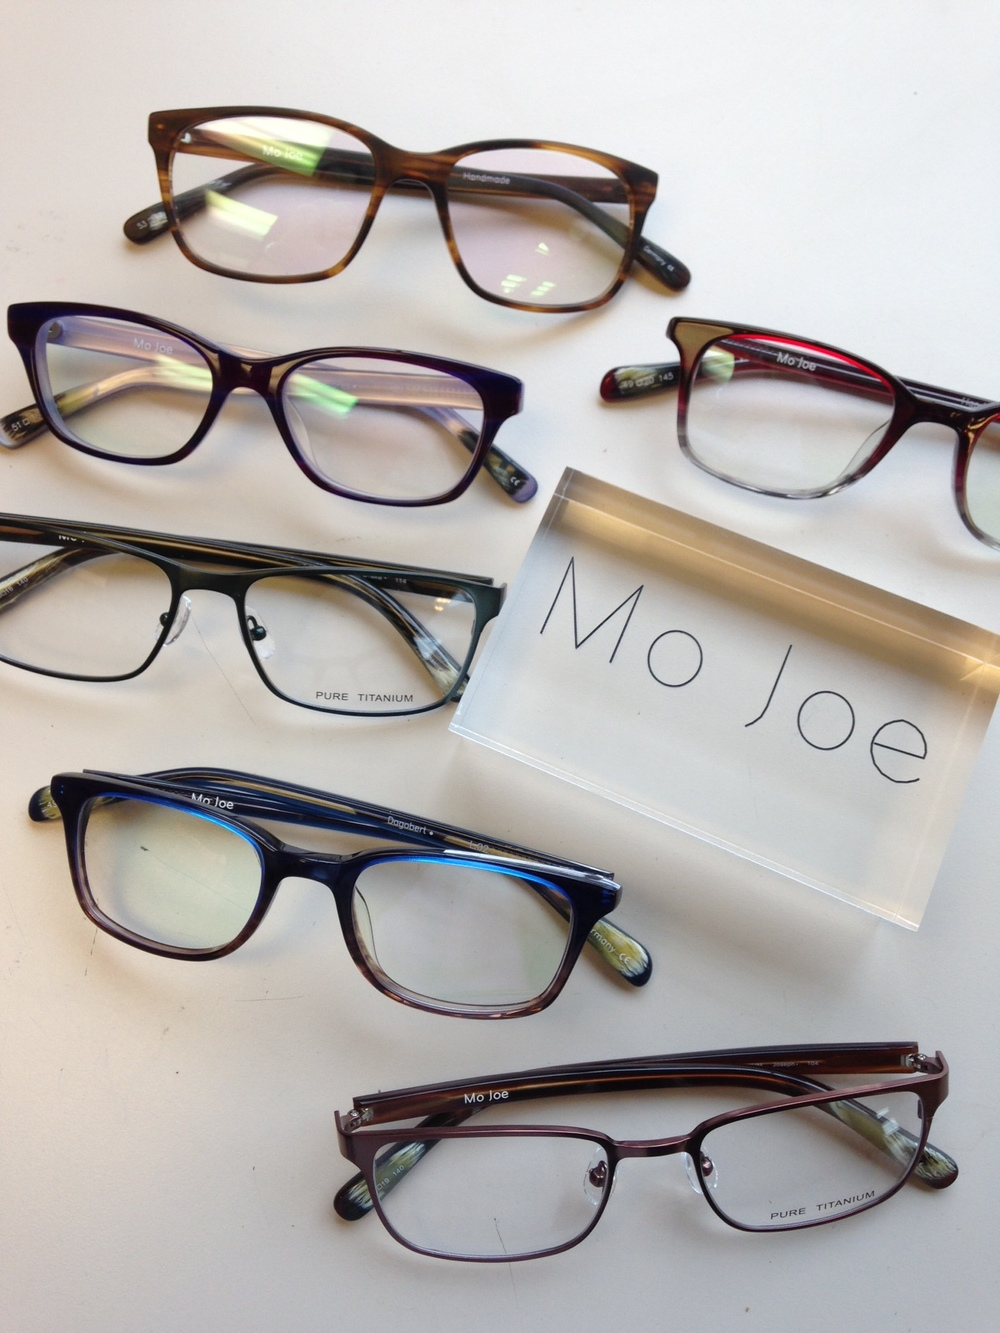 We just brought in a collection of private label frames from Sho Eyeworks.  The main reason we chose to bring in this collection?.....We needed another option at an under $200 price point that was high quality, on trend but also classic with universal appeal, and that our customers couldn't shop around.  We gave them our own personalized name, MoJoe. One of my fellow opticians, Krystal came up with the name idea as something fun and memorable, but also as a nod to our owner, Dr. Joe, who celebrates 40 years of ownership this year.